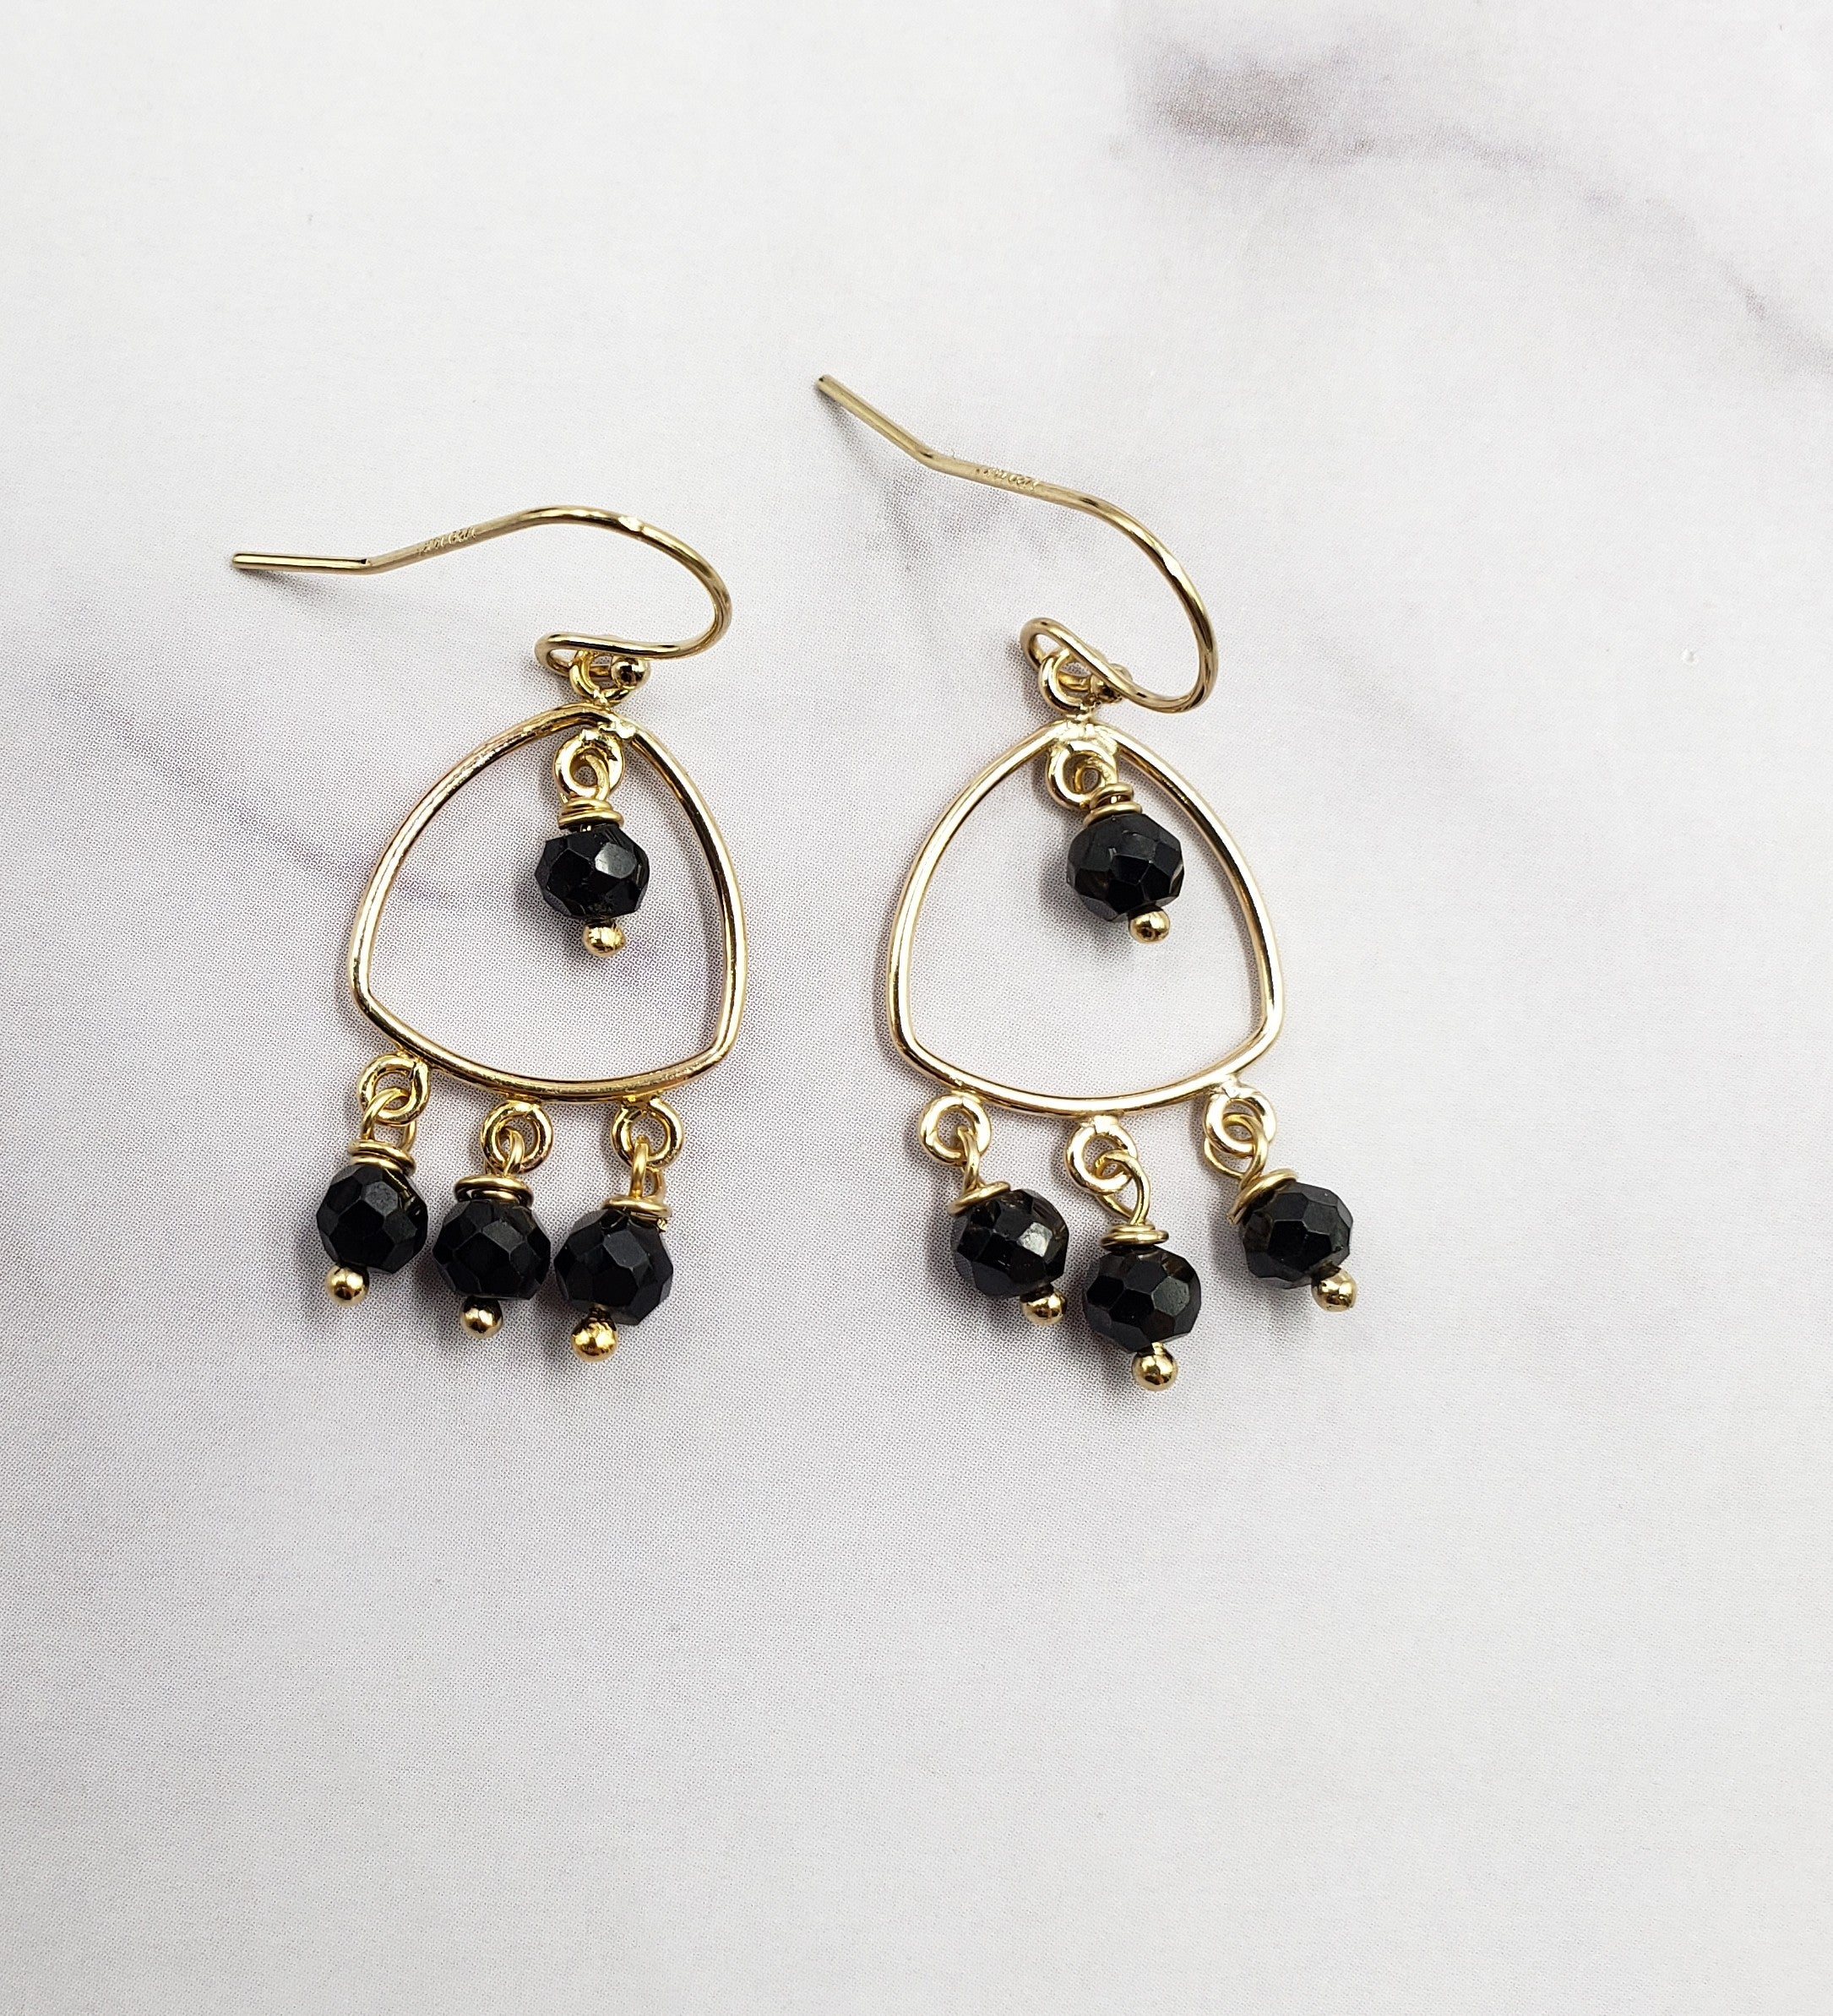 Boho Black Spinel Earrings